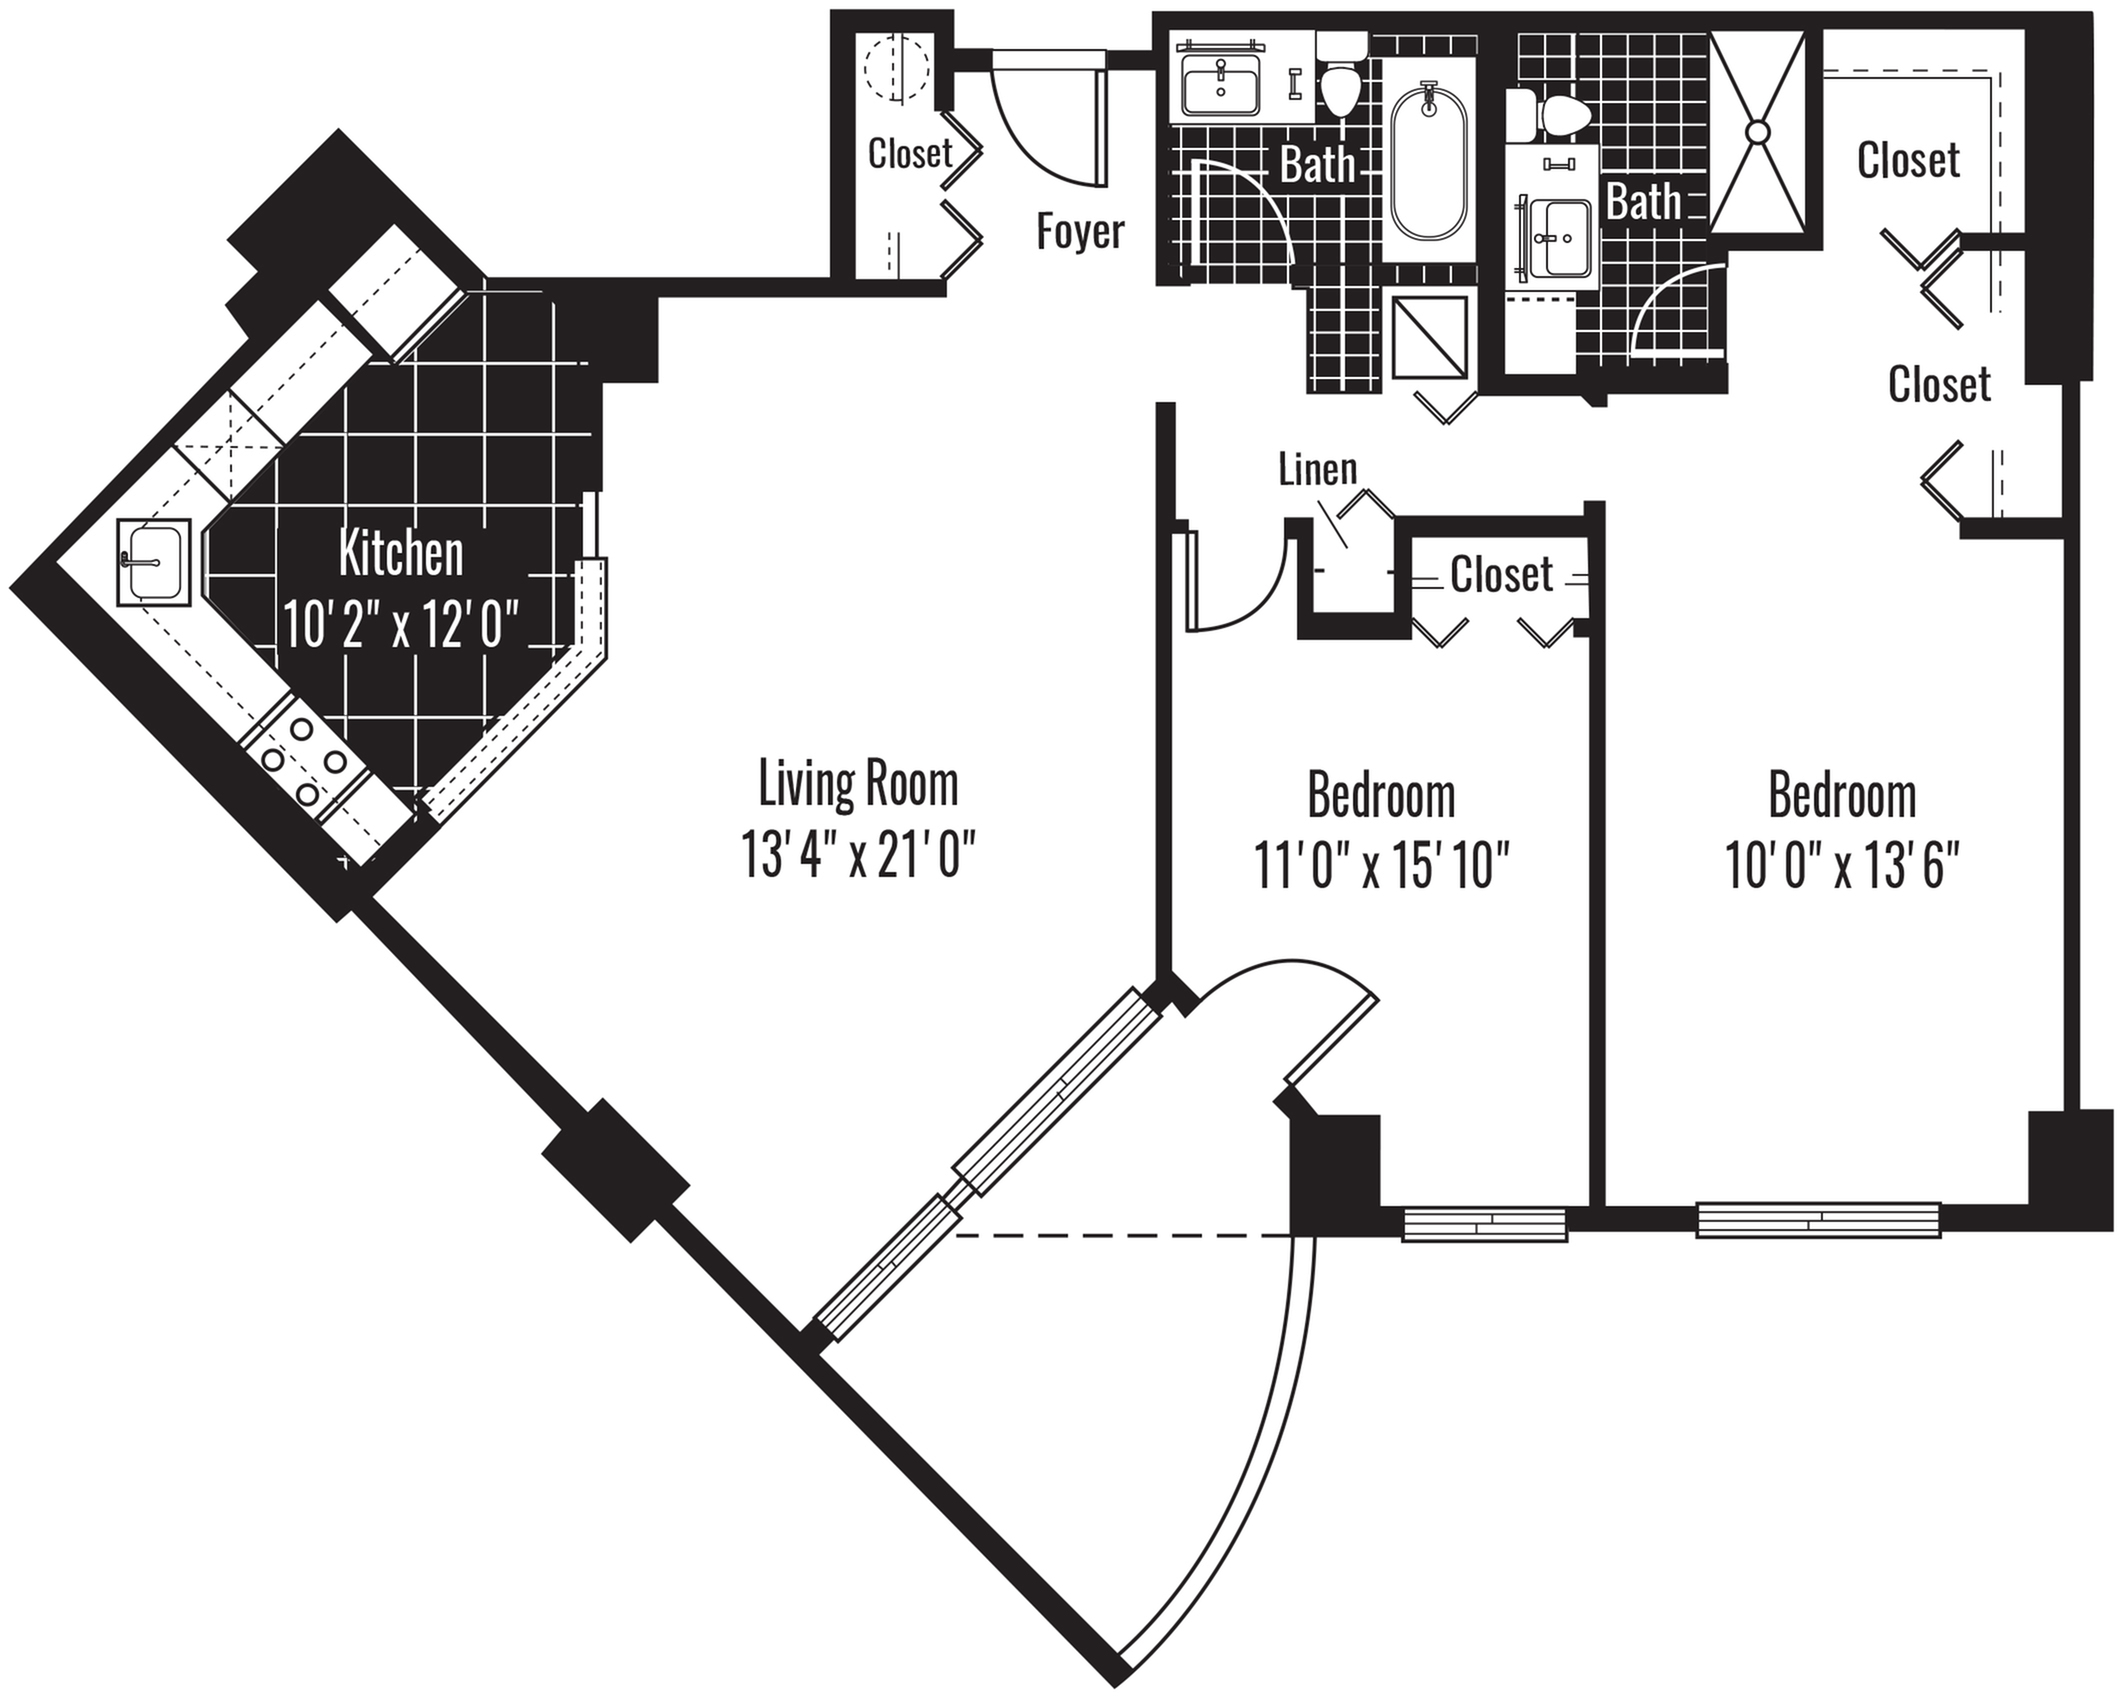 1160 square foot two bedroom two bath apartment floorplan image